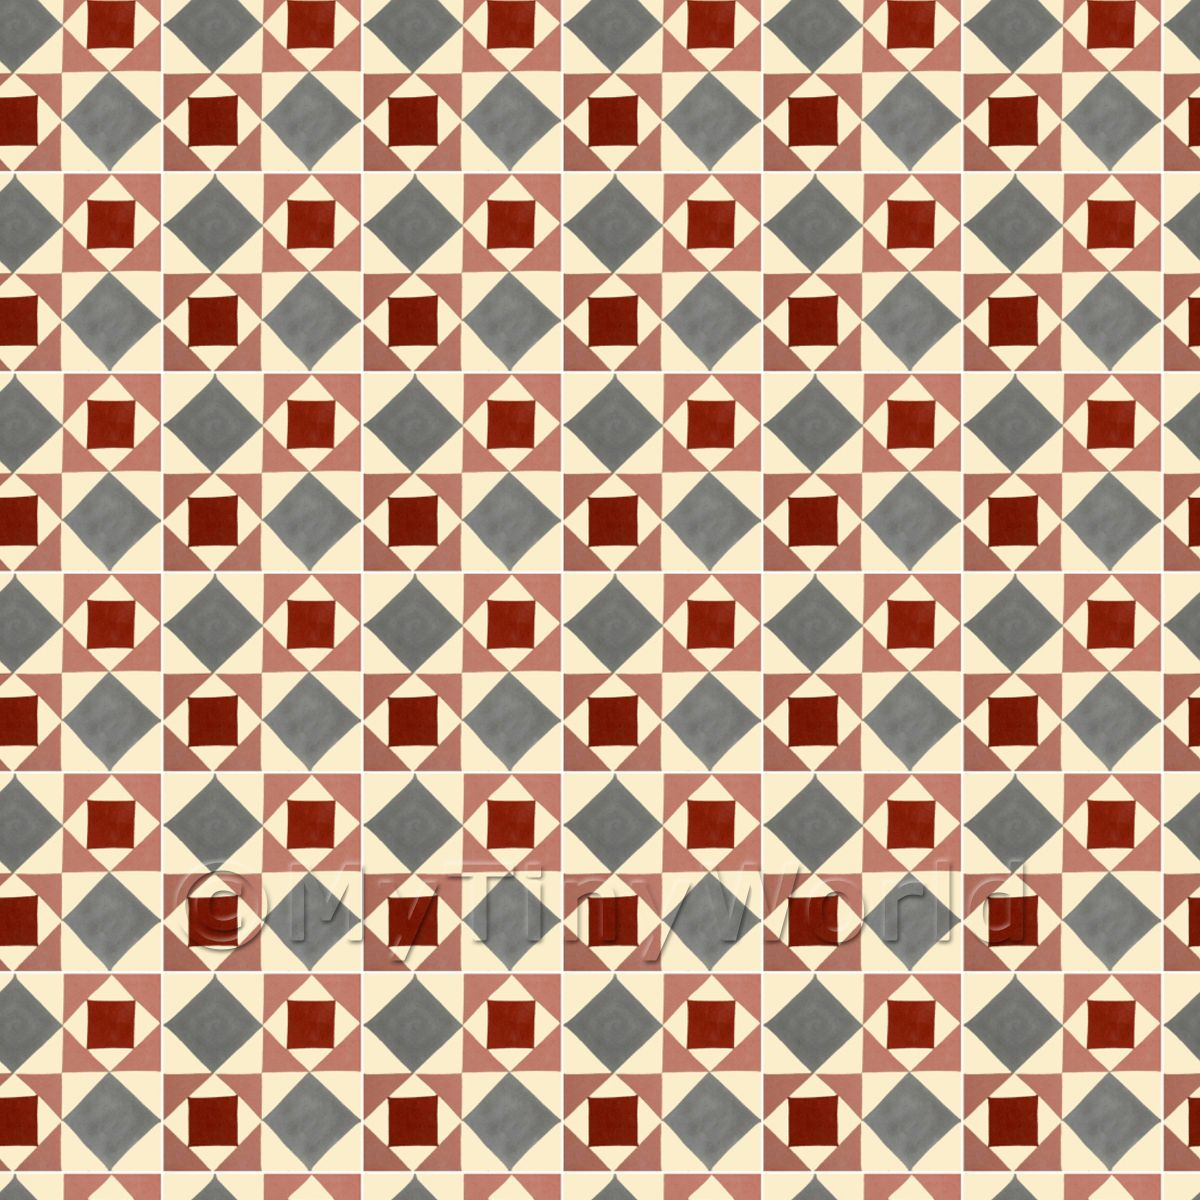 1:24th Large Red And Grey Geometric Design Tile Sheet With White Grout